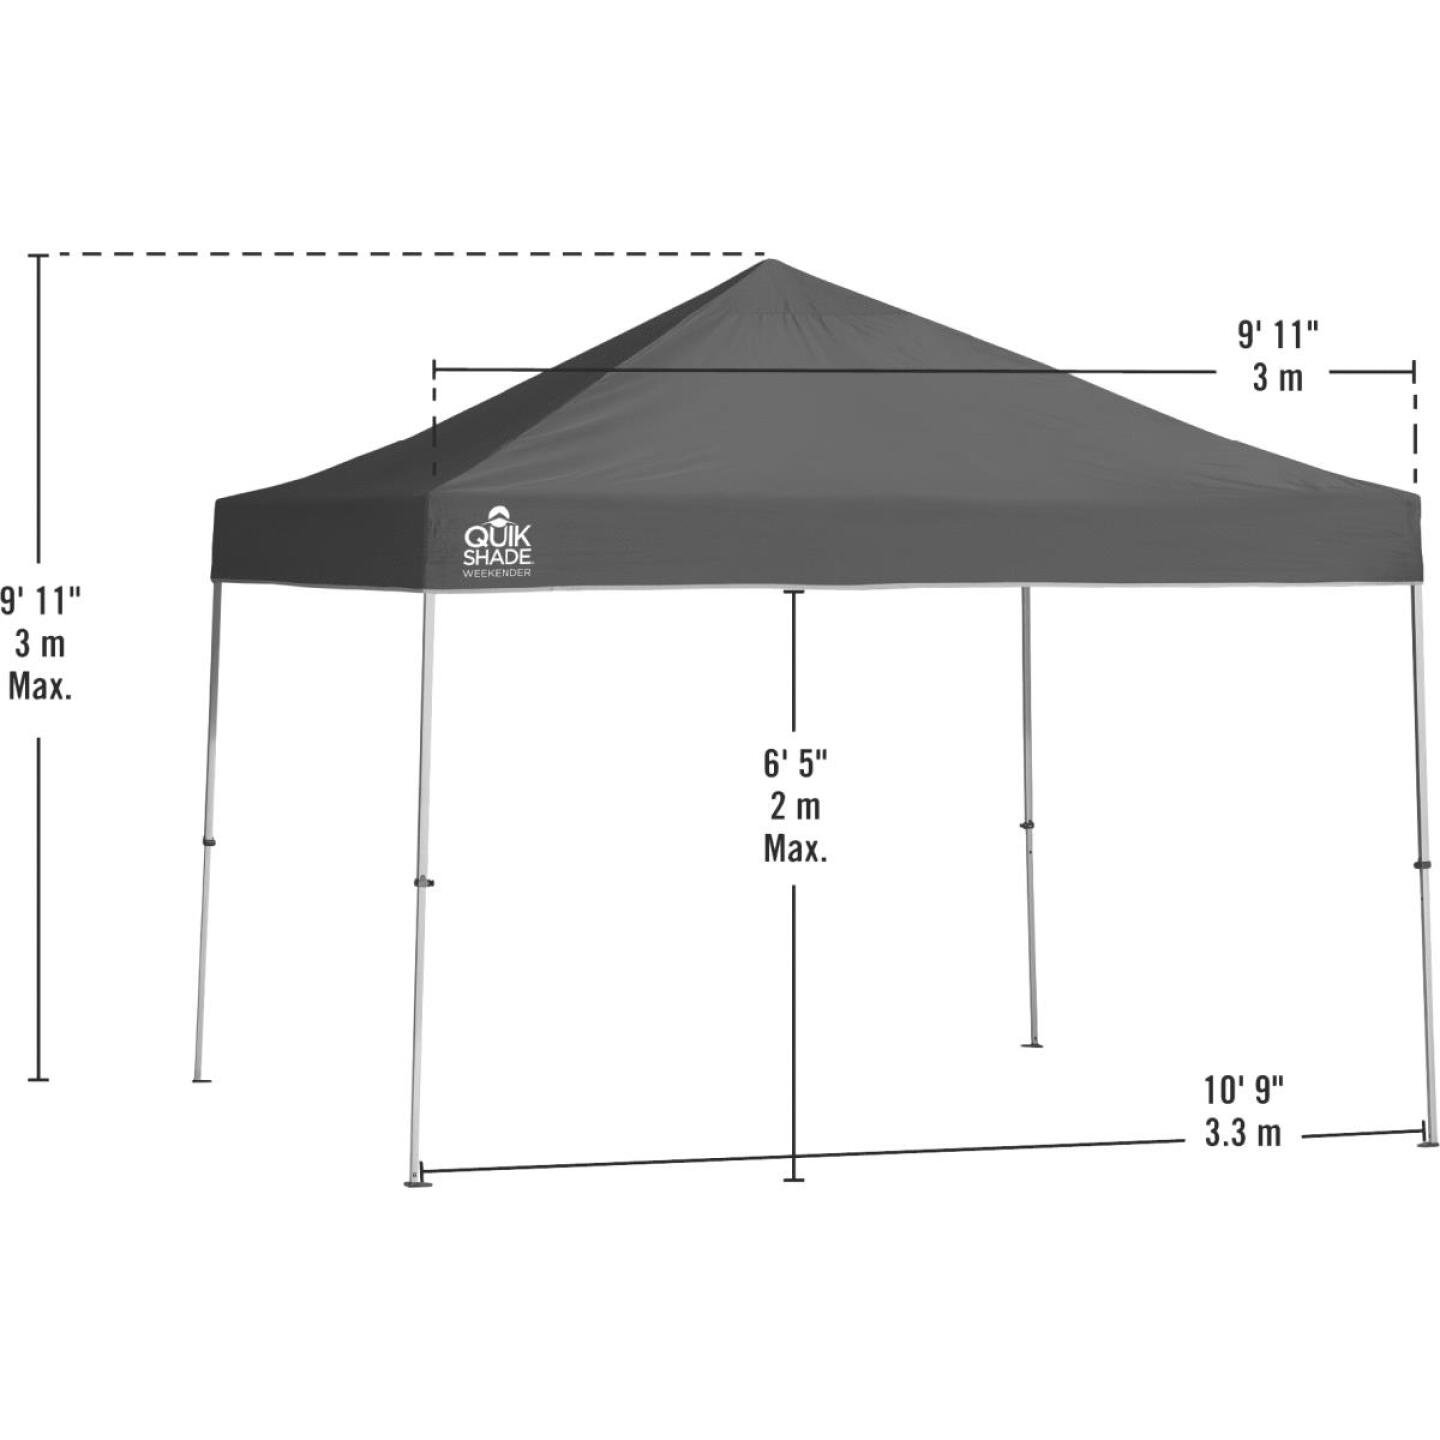 Quick Shade Weekender Elite 10 Ft. x 10 Ft. Green 150D Poly Top Aluminex Canopy Image 3